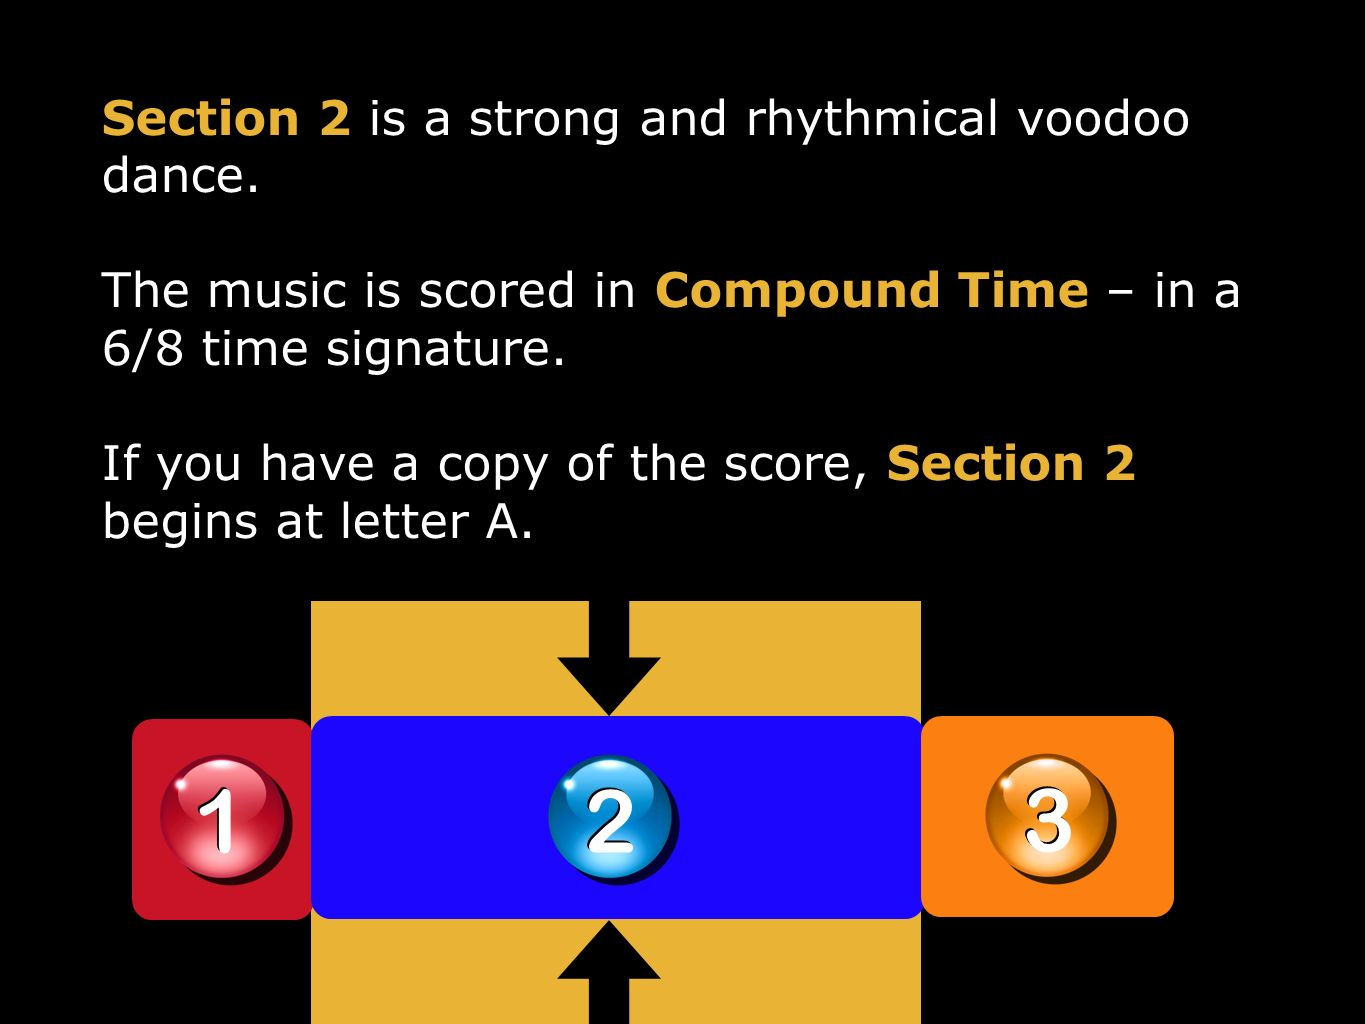 1 1 2 2 3 3 Section 2 is a strong and rhythmical voodoo dance. The music is scored in Compound Time – in a 6/8 time signature. If you have a copy of t